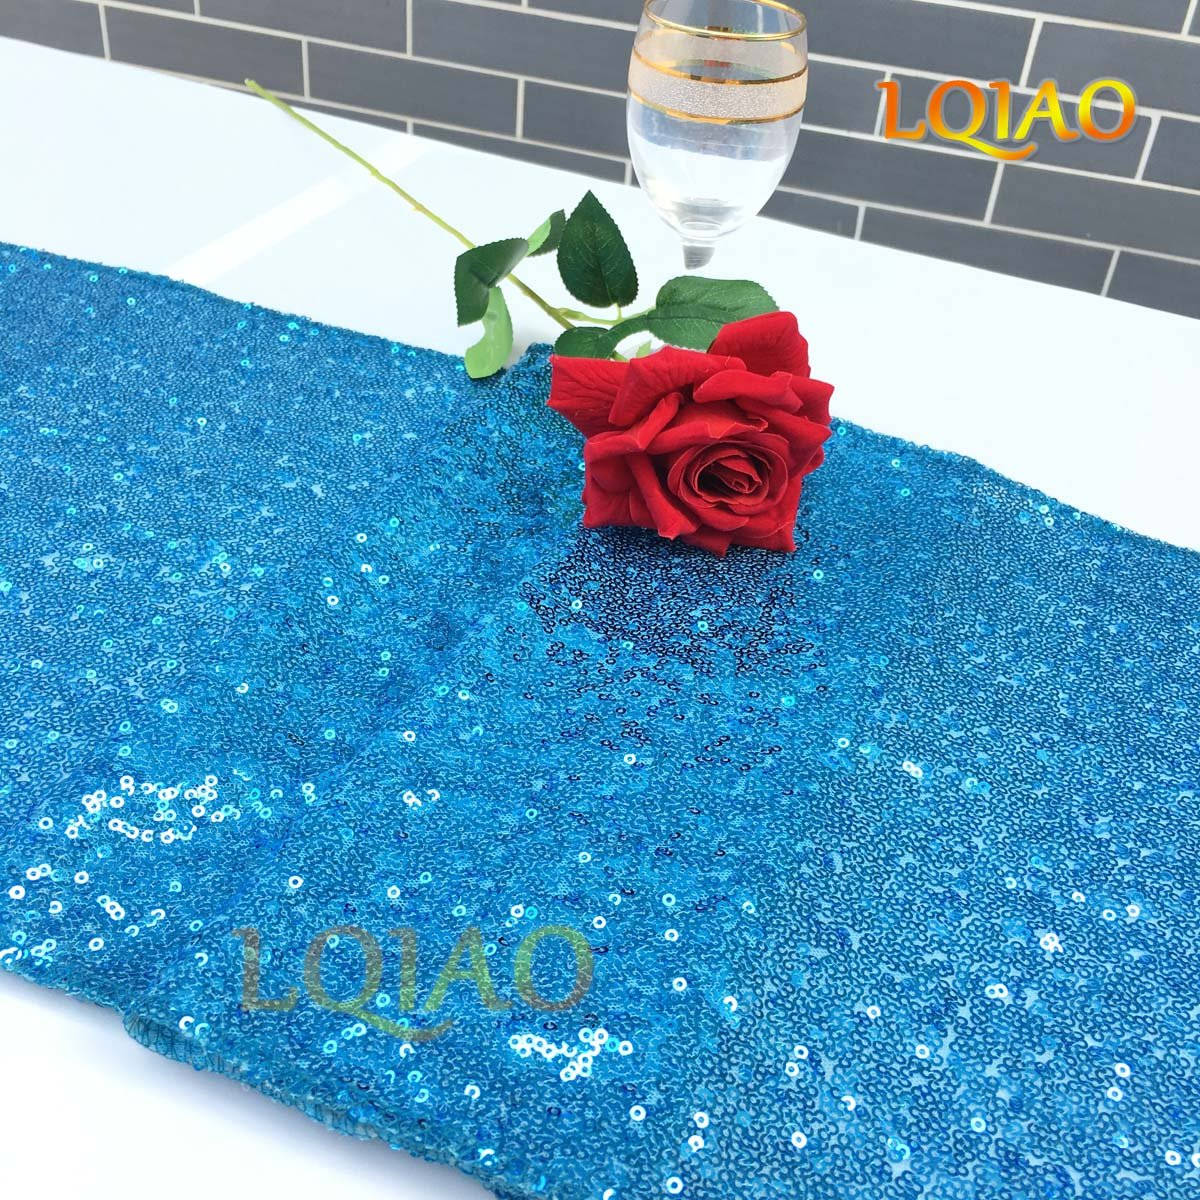 LQIAO Christmas Table Runner Sequin 12x108-in, Turquoise, Shiny Fabric Birthday/Wedding/Party Decoration(wholesale Possible), Pack of 20 PCS